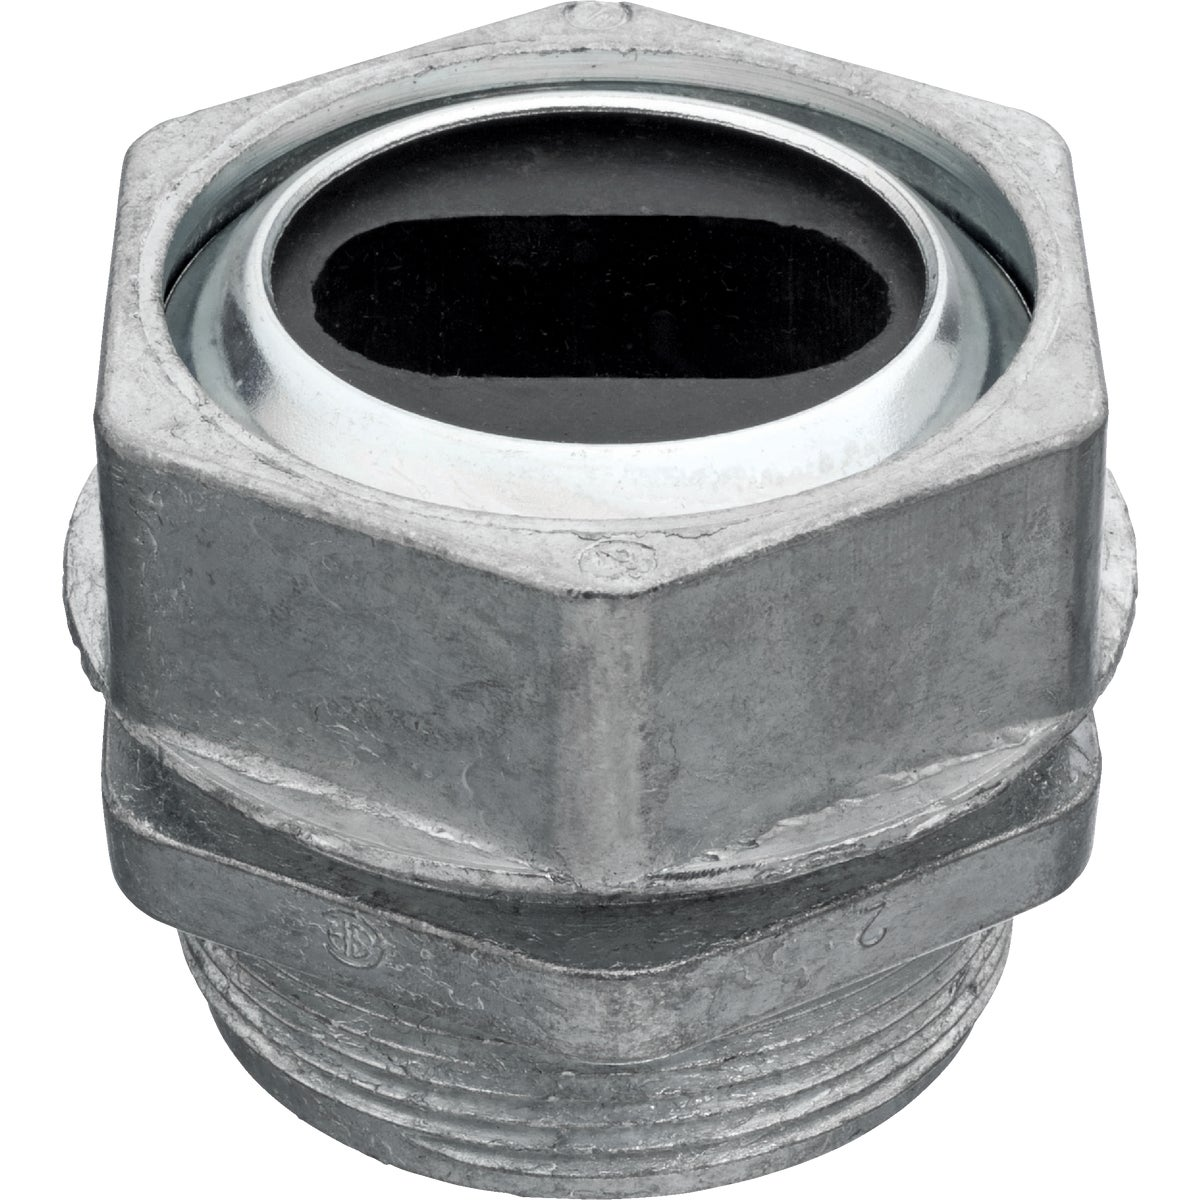 "1-1/4"" WATRTTE CONNECTOR"